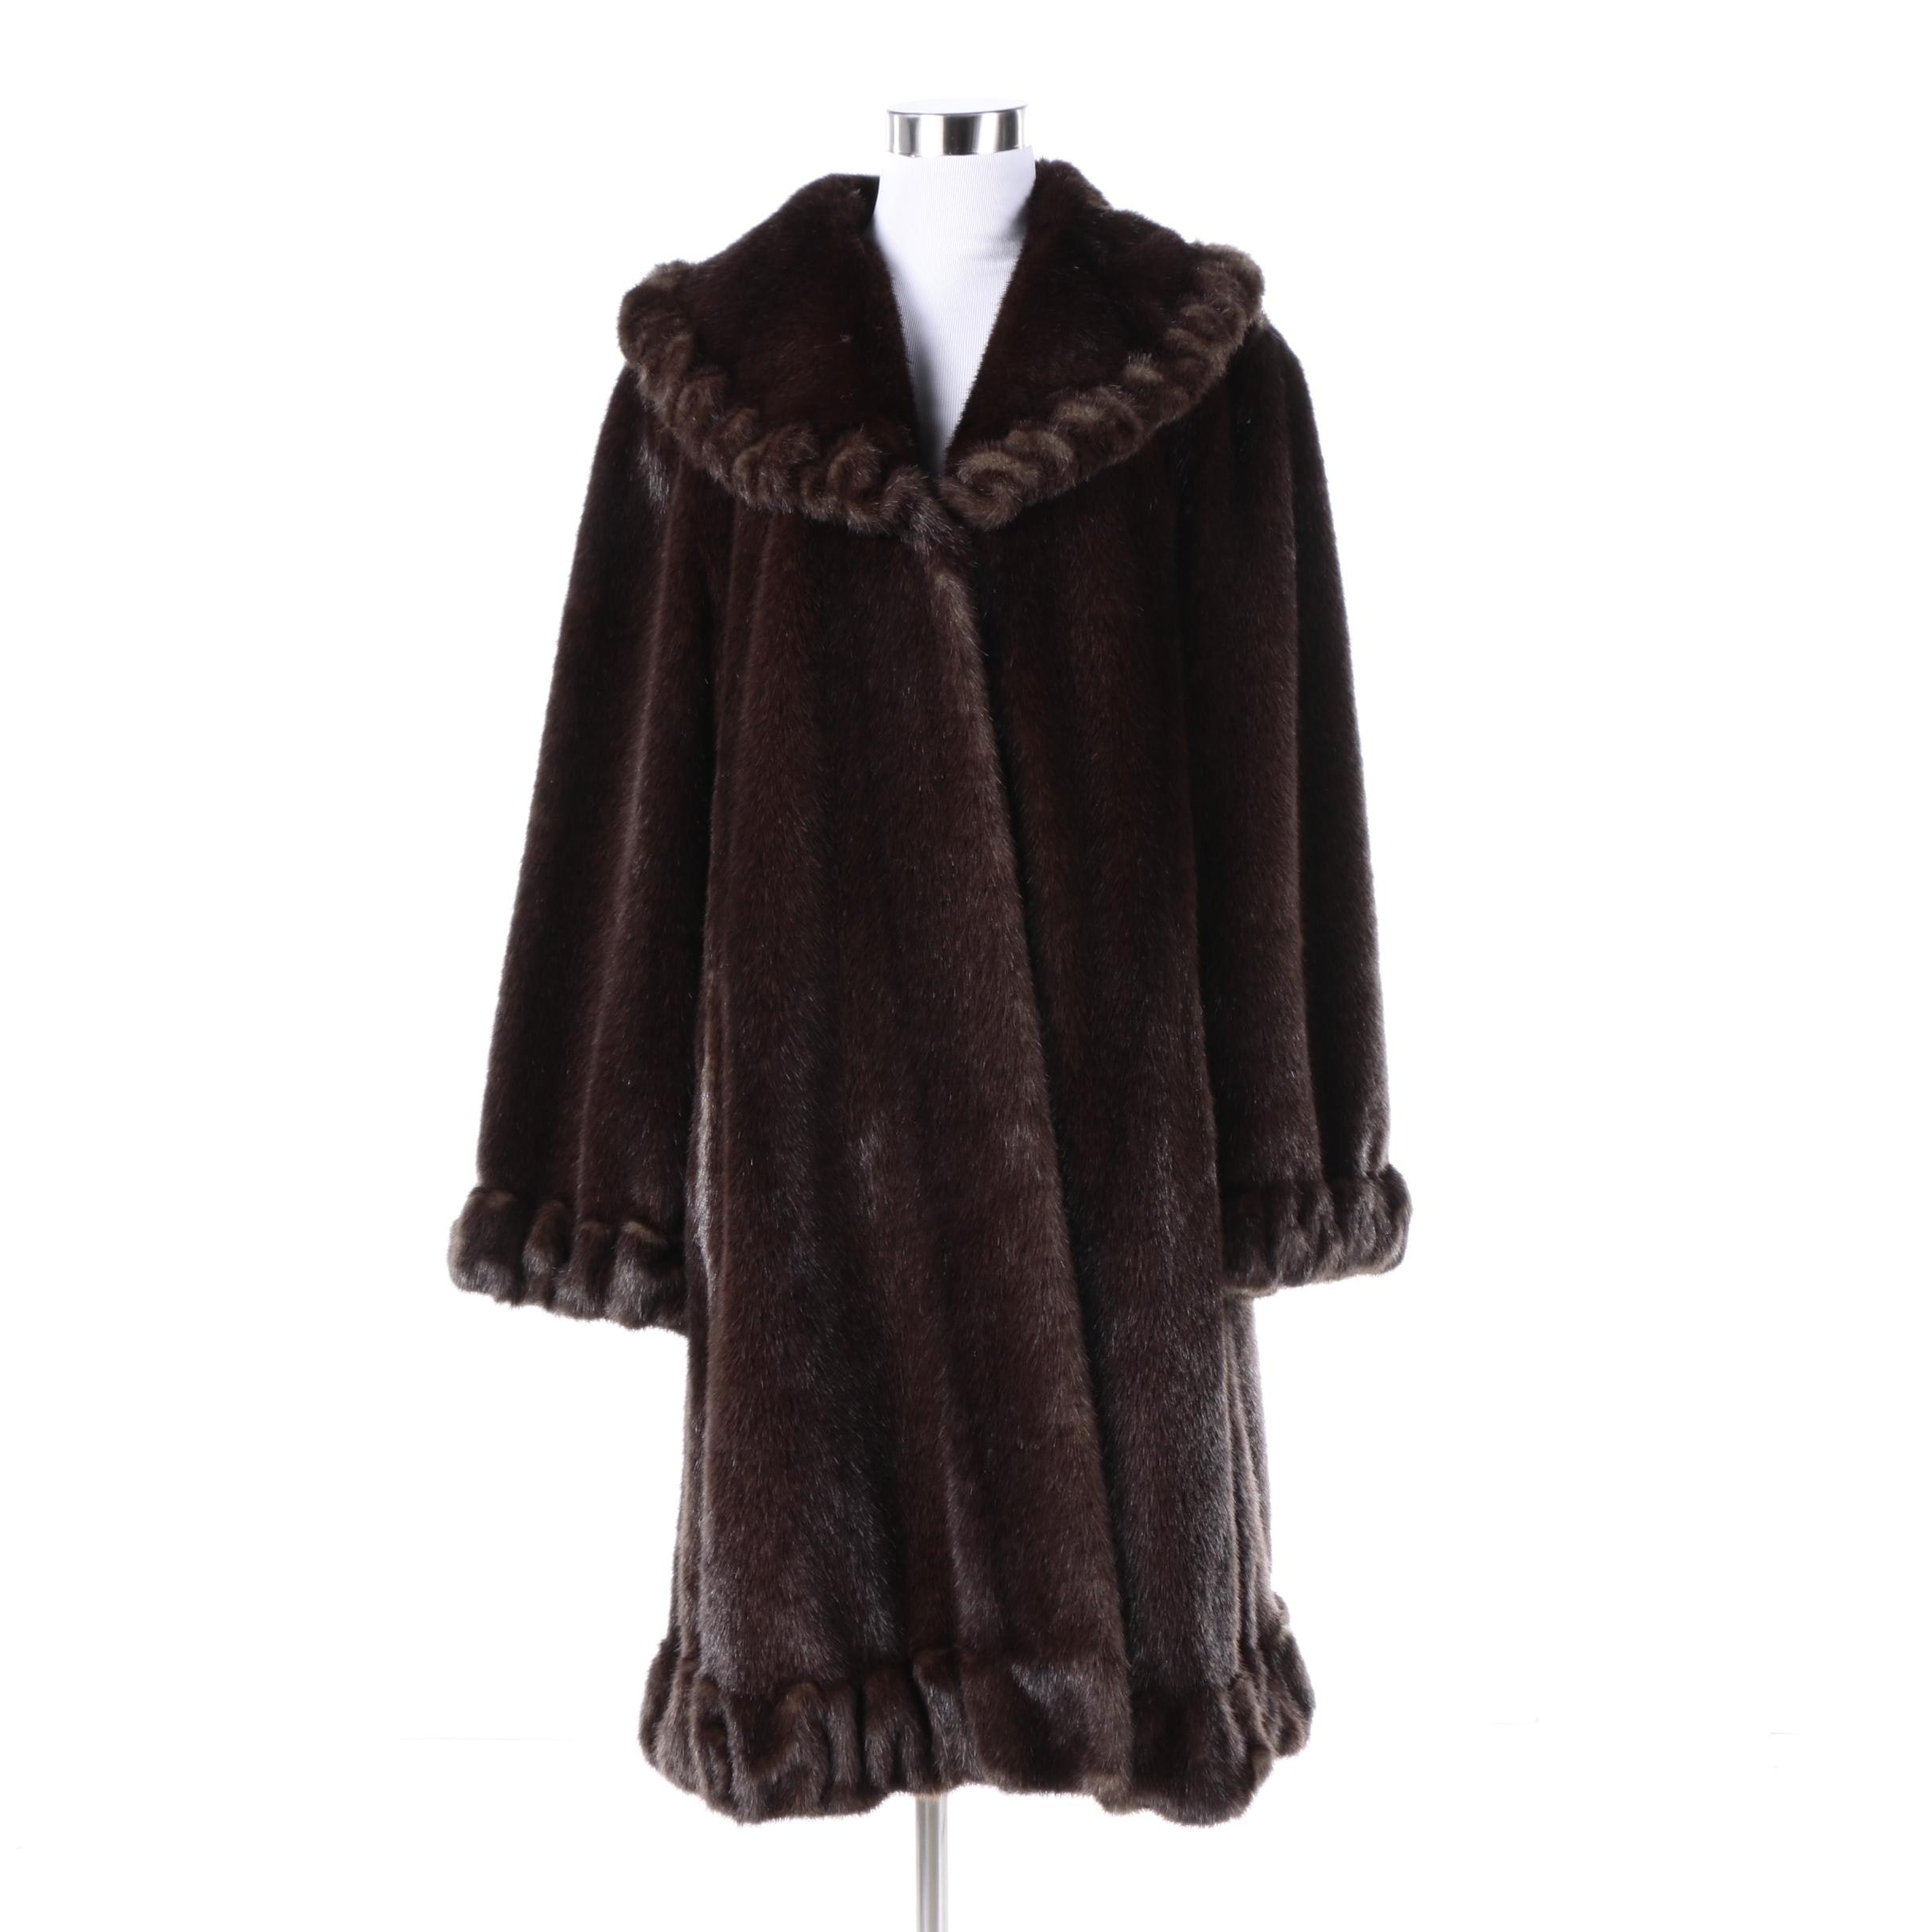 Women's Jones New York Faux Fur Coat with Ruffled Trim